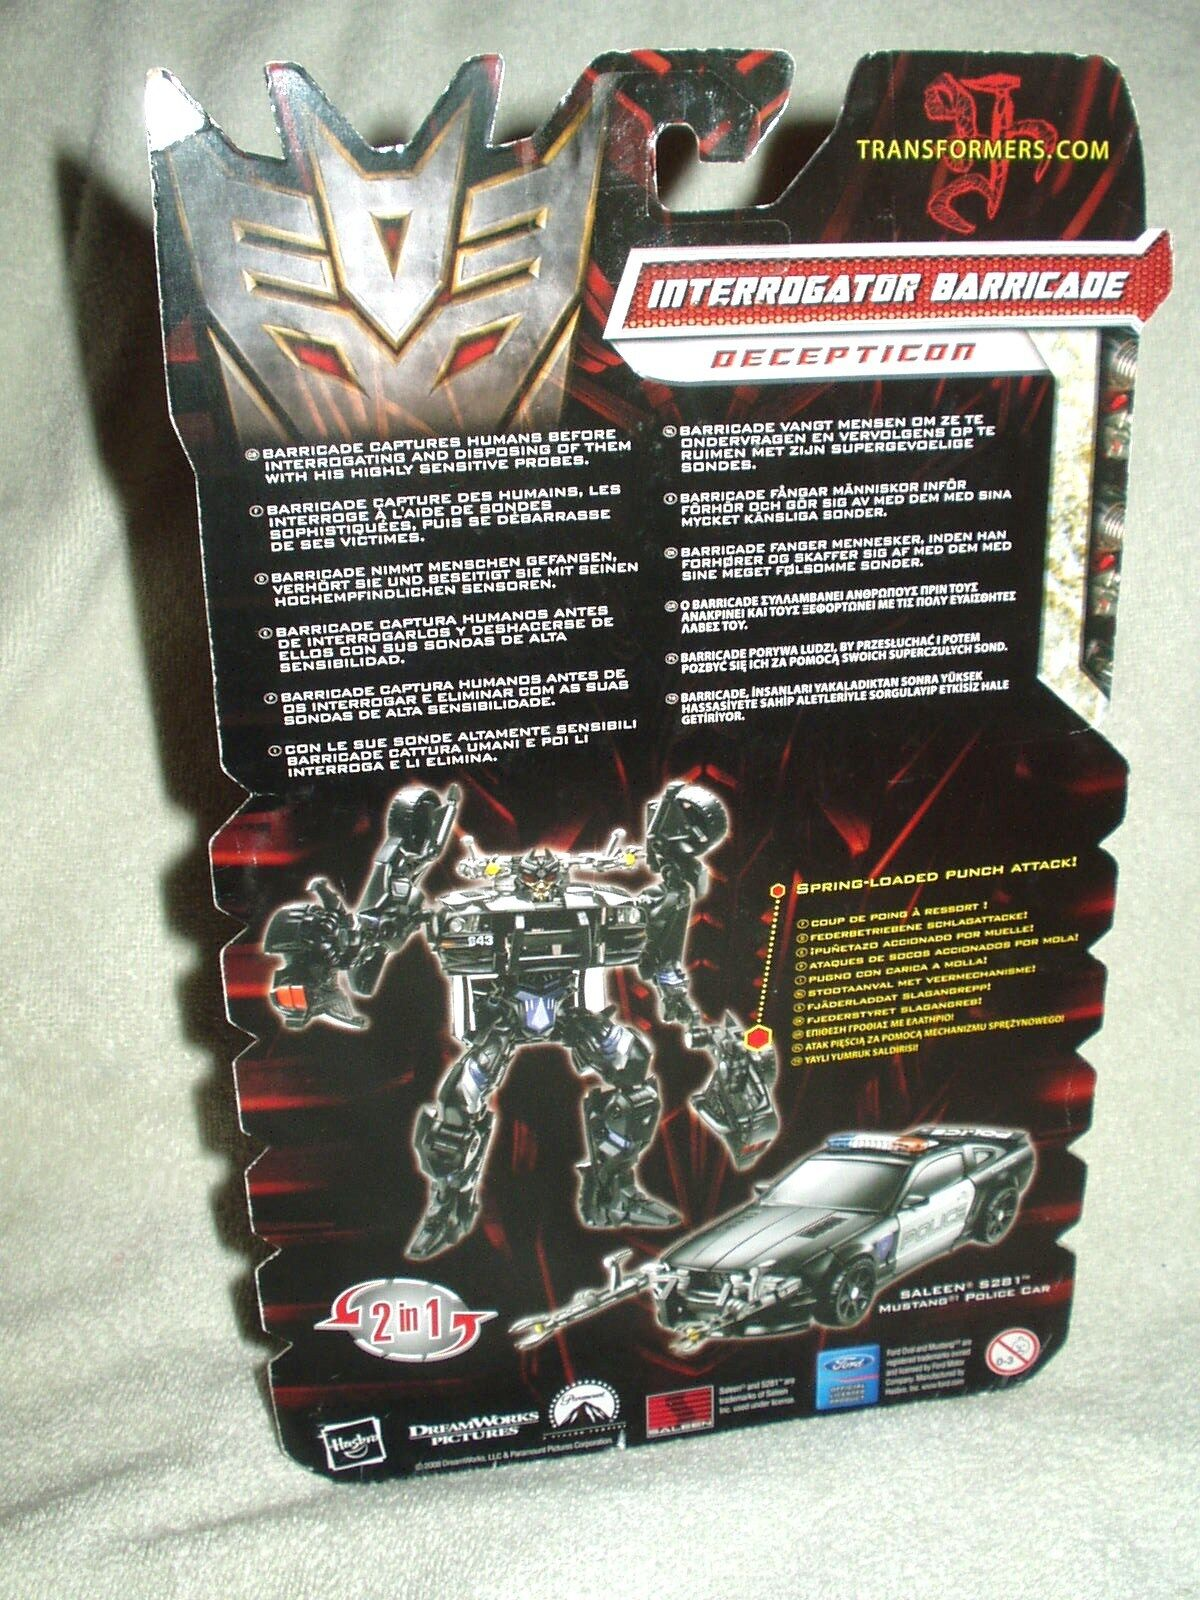 Transformers Action Figure redF Movie Deluxe Deluxe Deluxe Interrogator Barricade 6 inch e47745